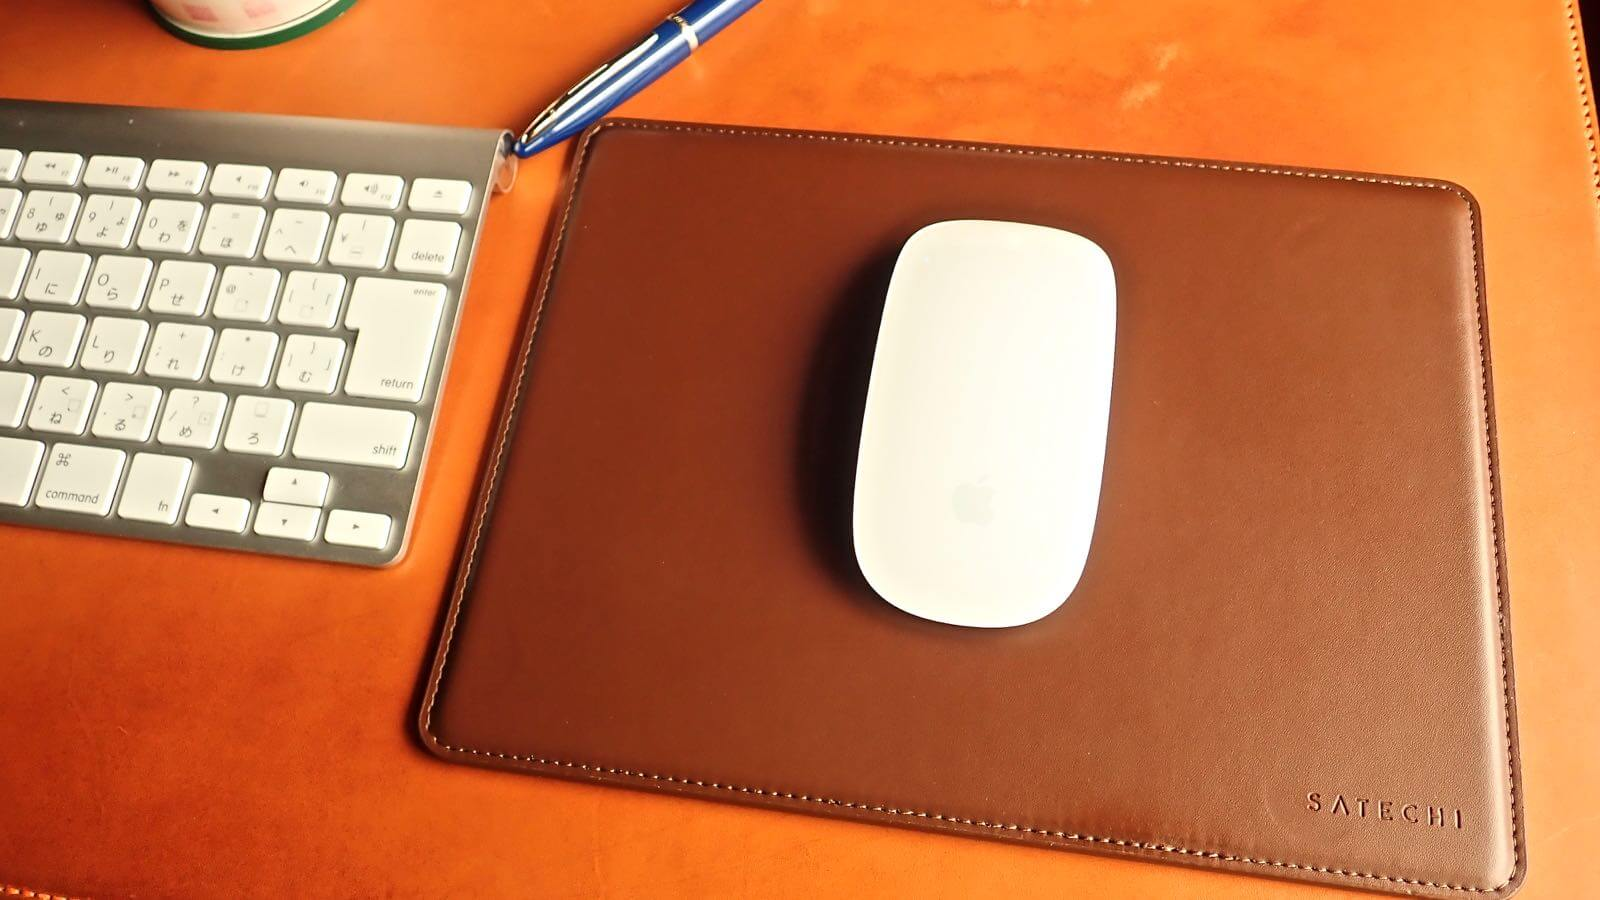 0196 Satechi Mouse pad Aluminum EcoLeather 13